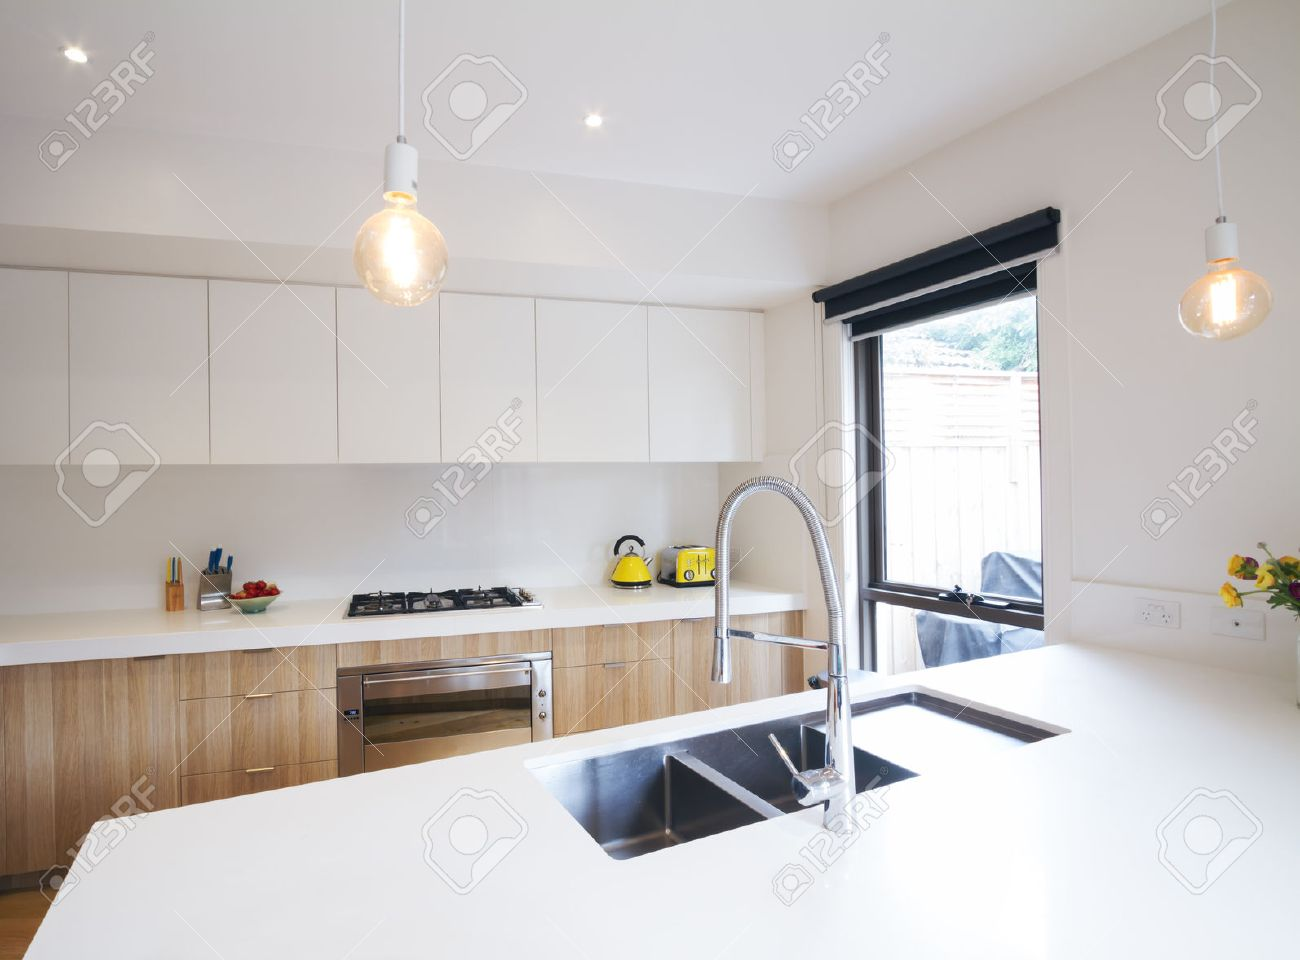 sink lighting. brilliant lighting modern kitchen with pendant lighting and sunken sink in island bench stock  photo  48470597 for sink lighting